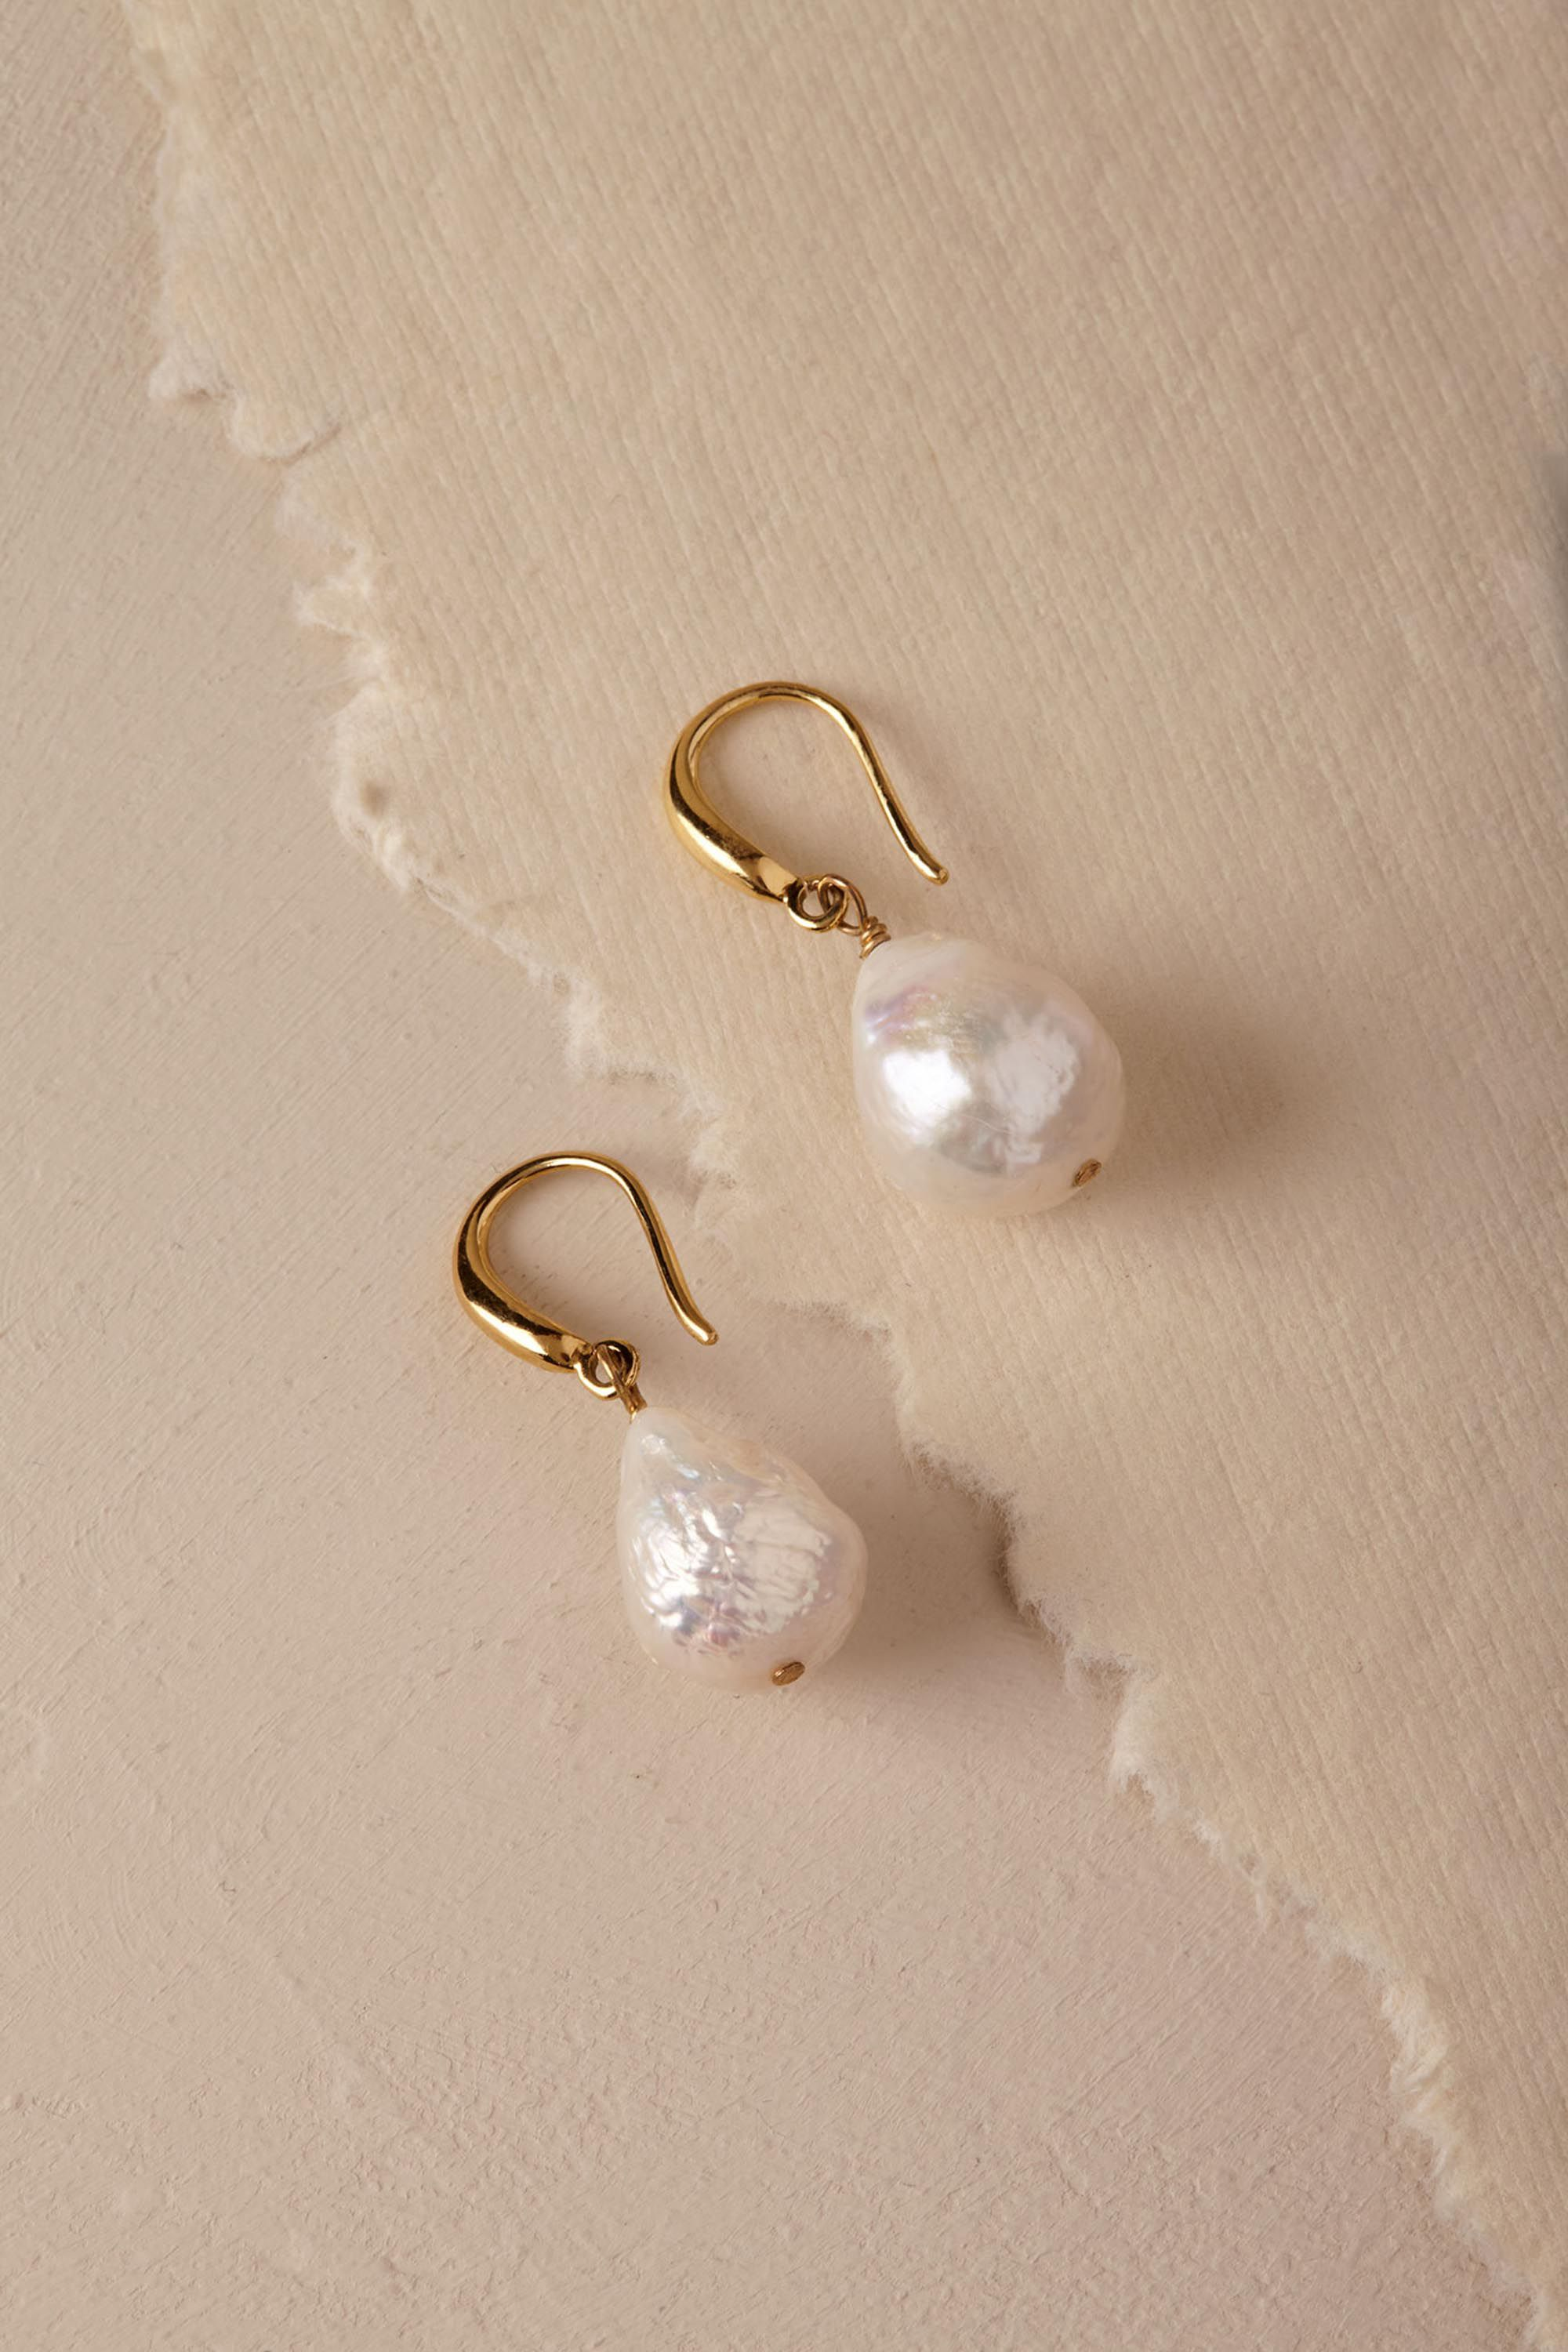 Battista Pearl Earrings